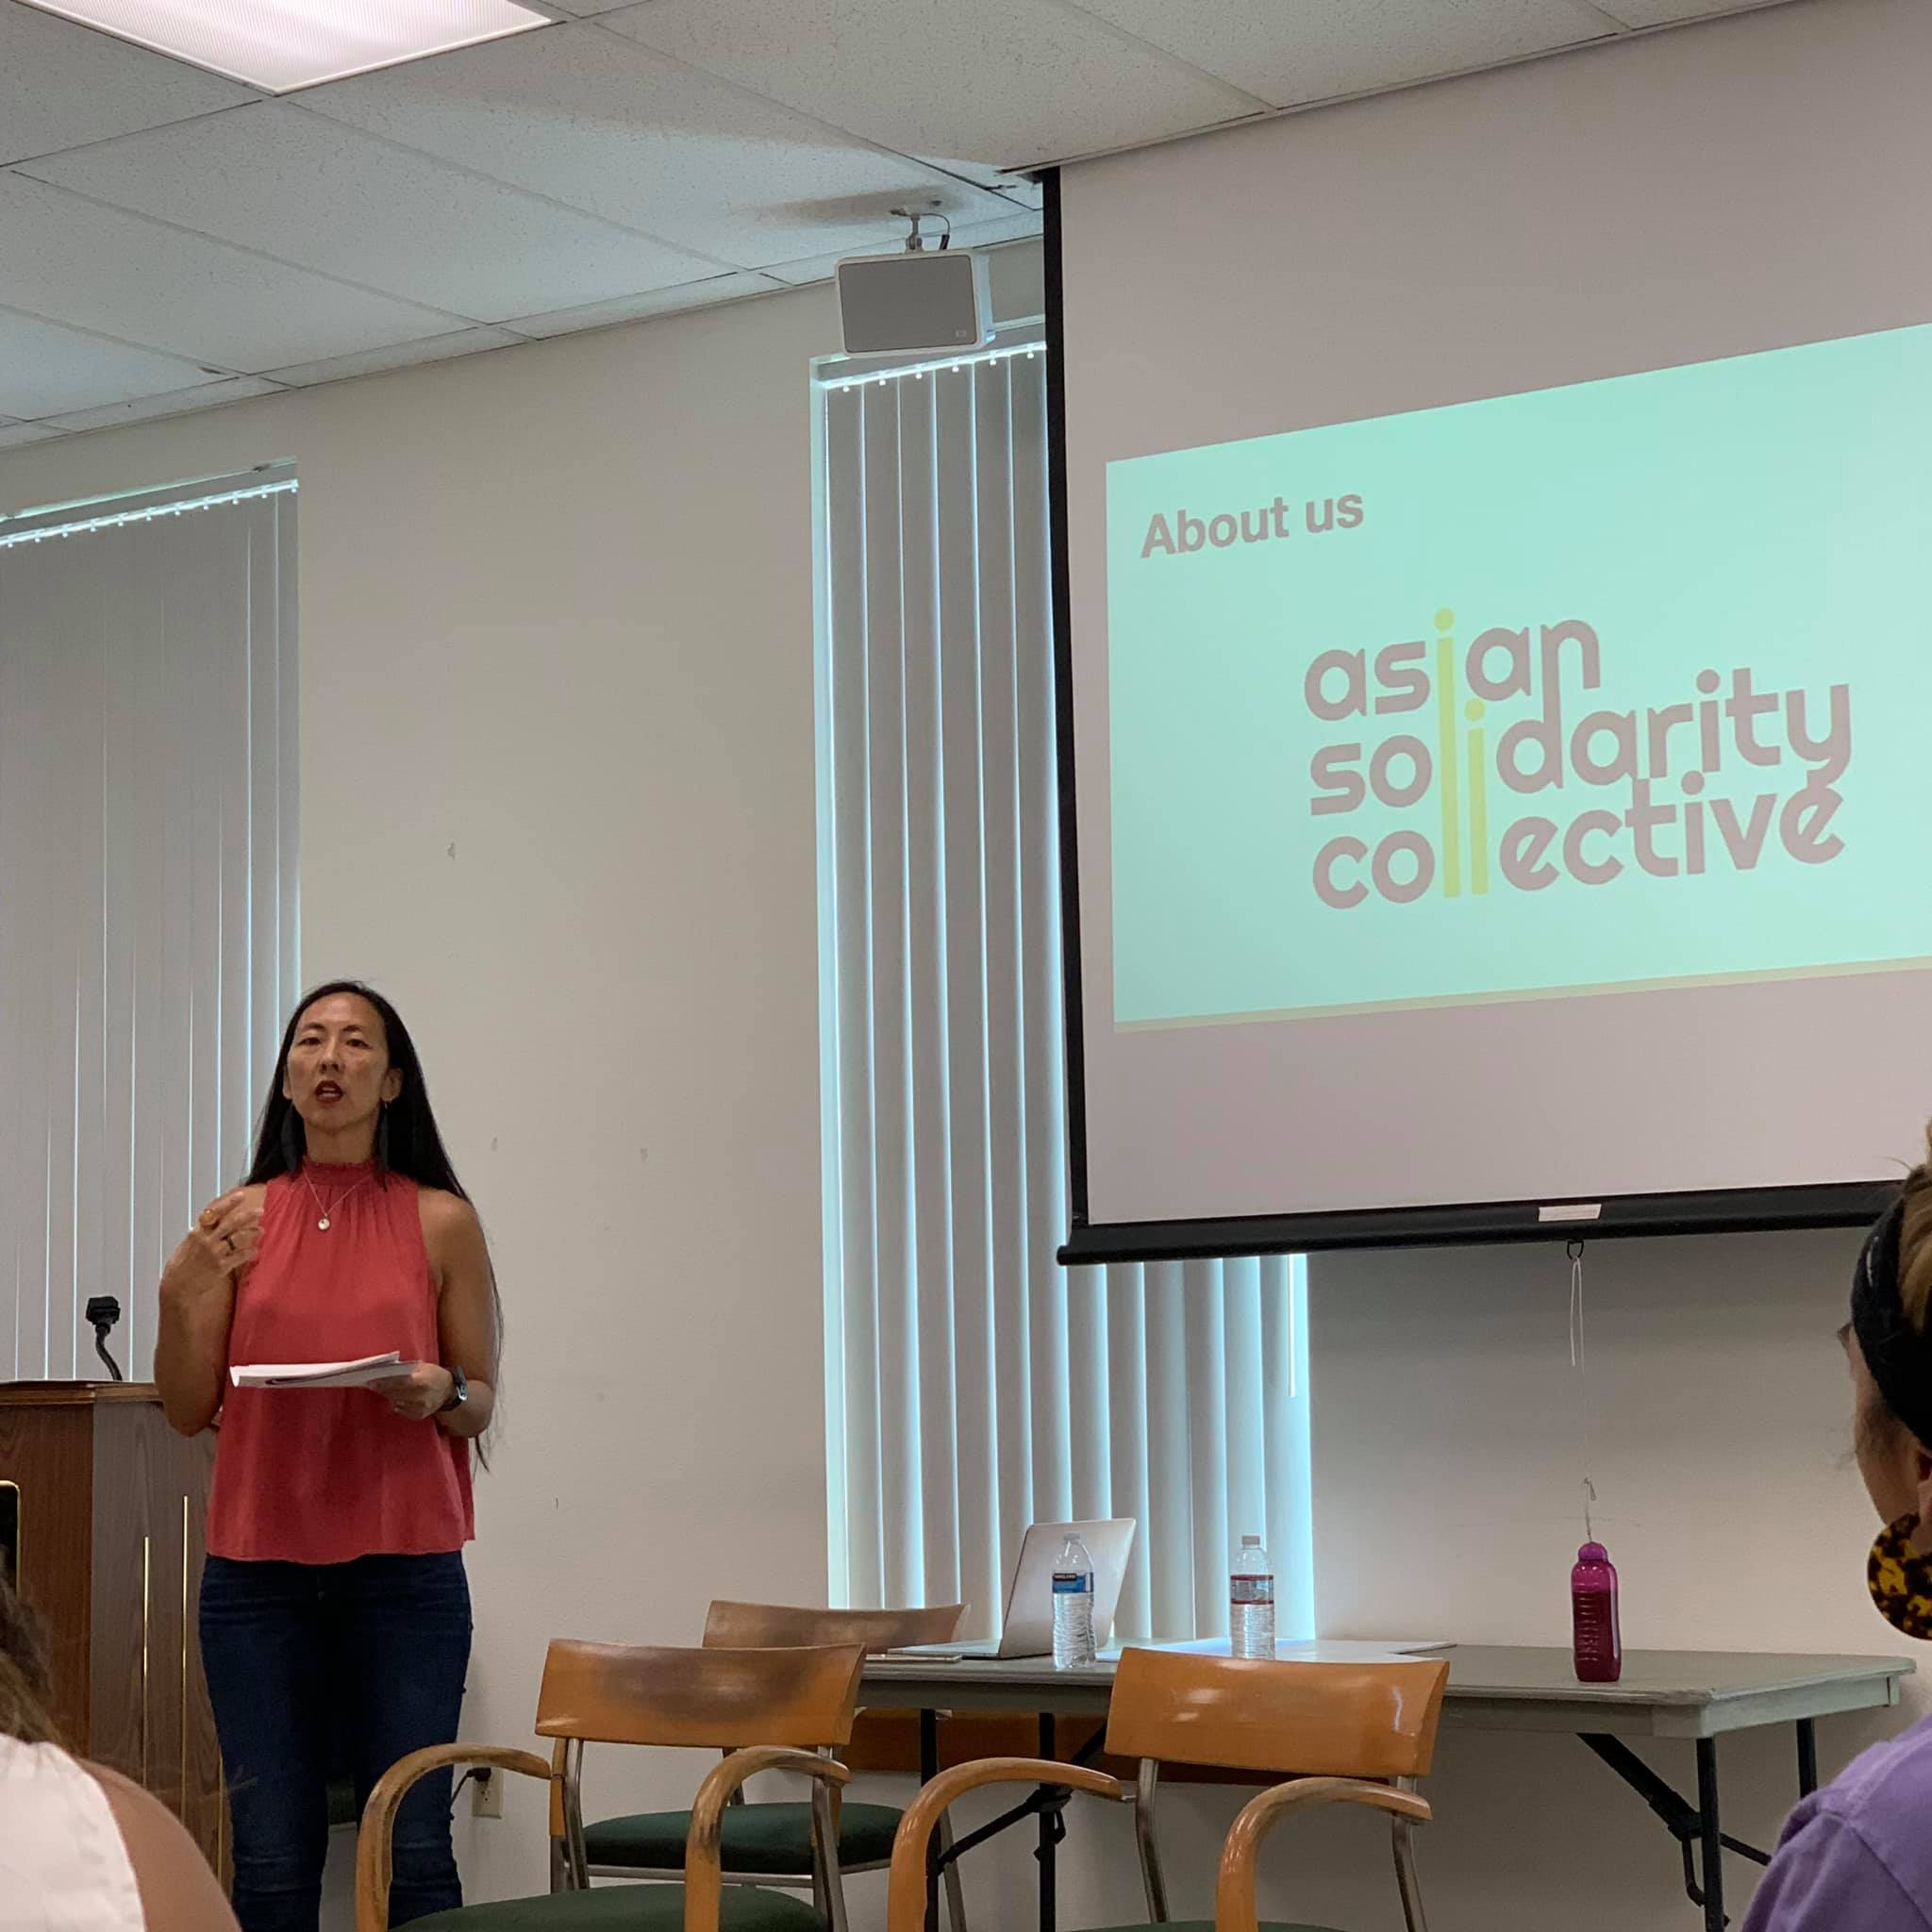 Asian American Identities Workshop